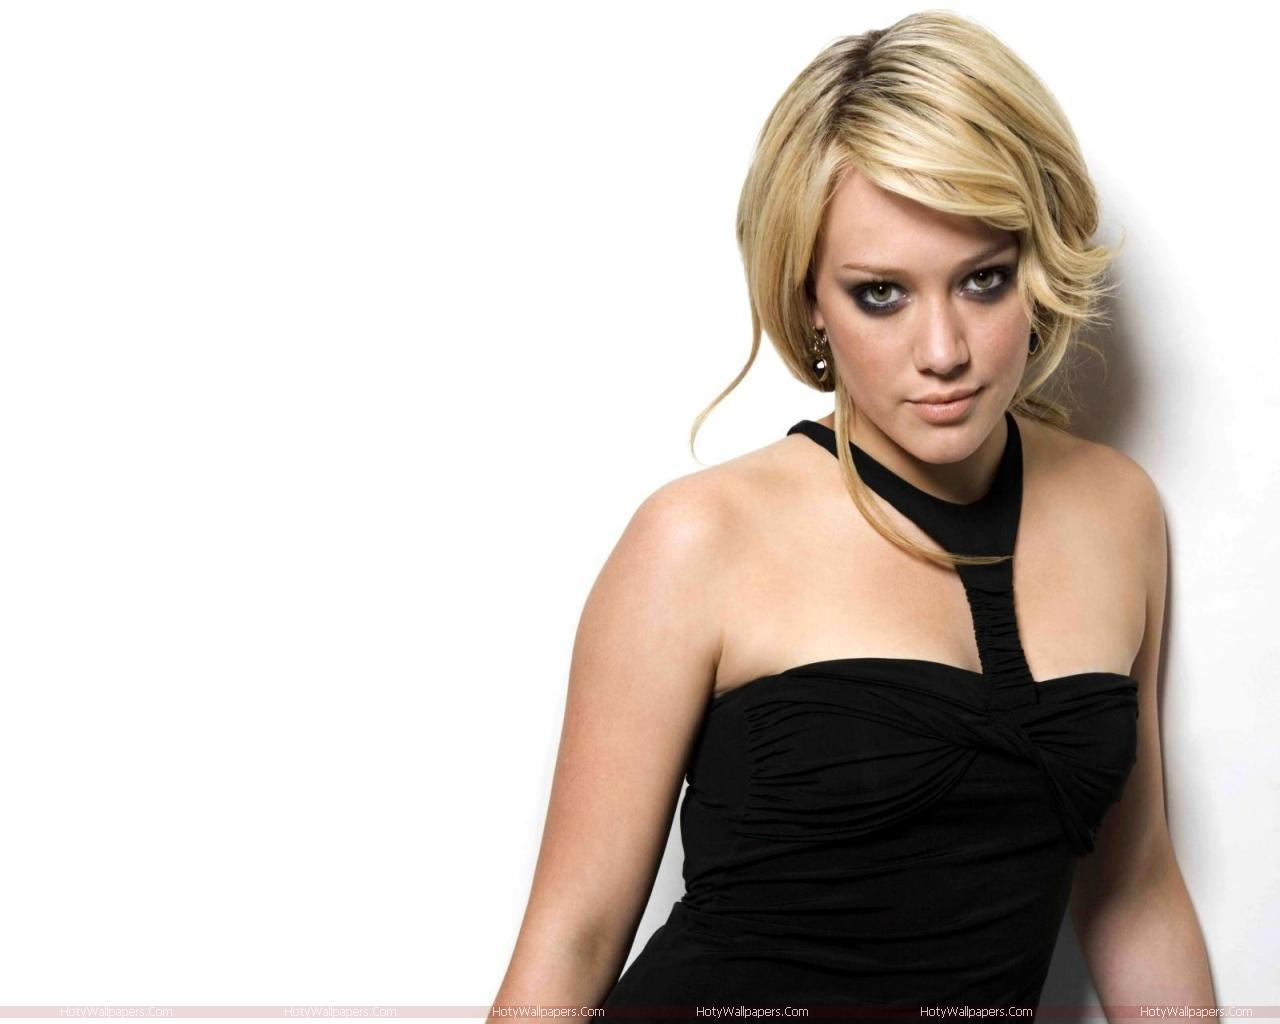 Haylie Duff Wallpaper HD Gothic Wallpaper